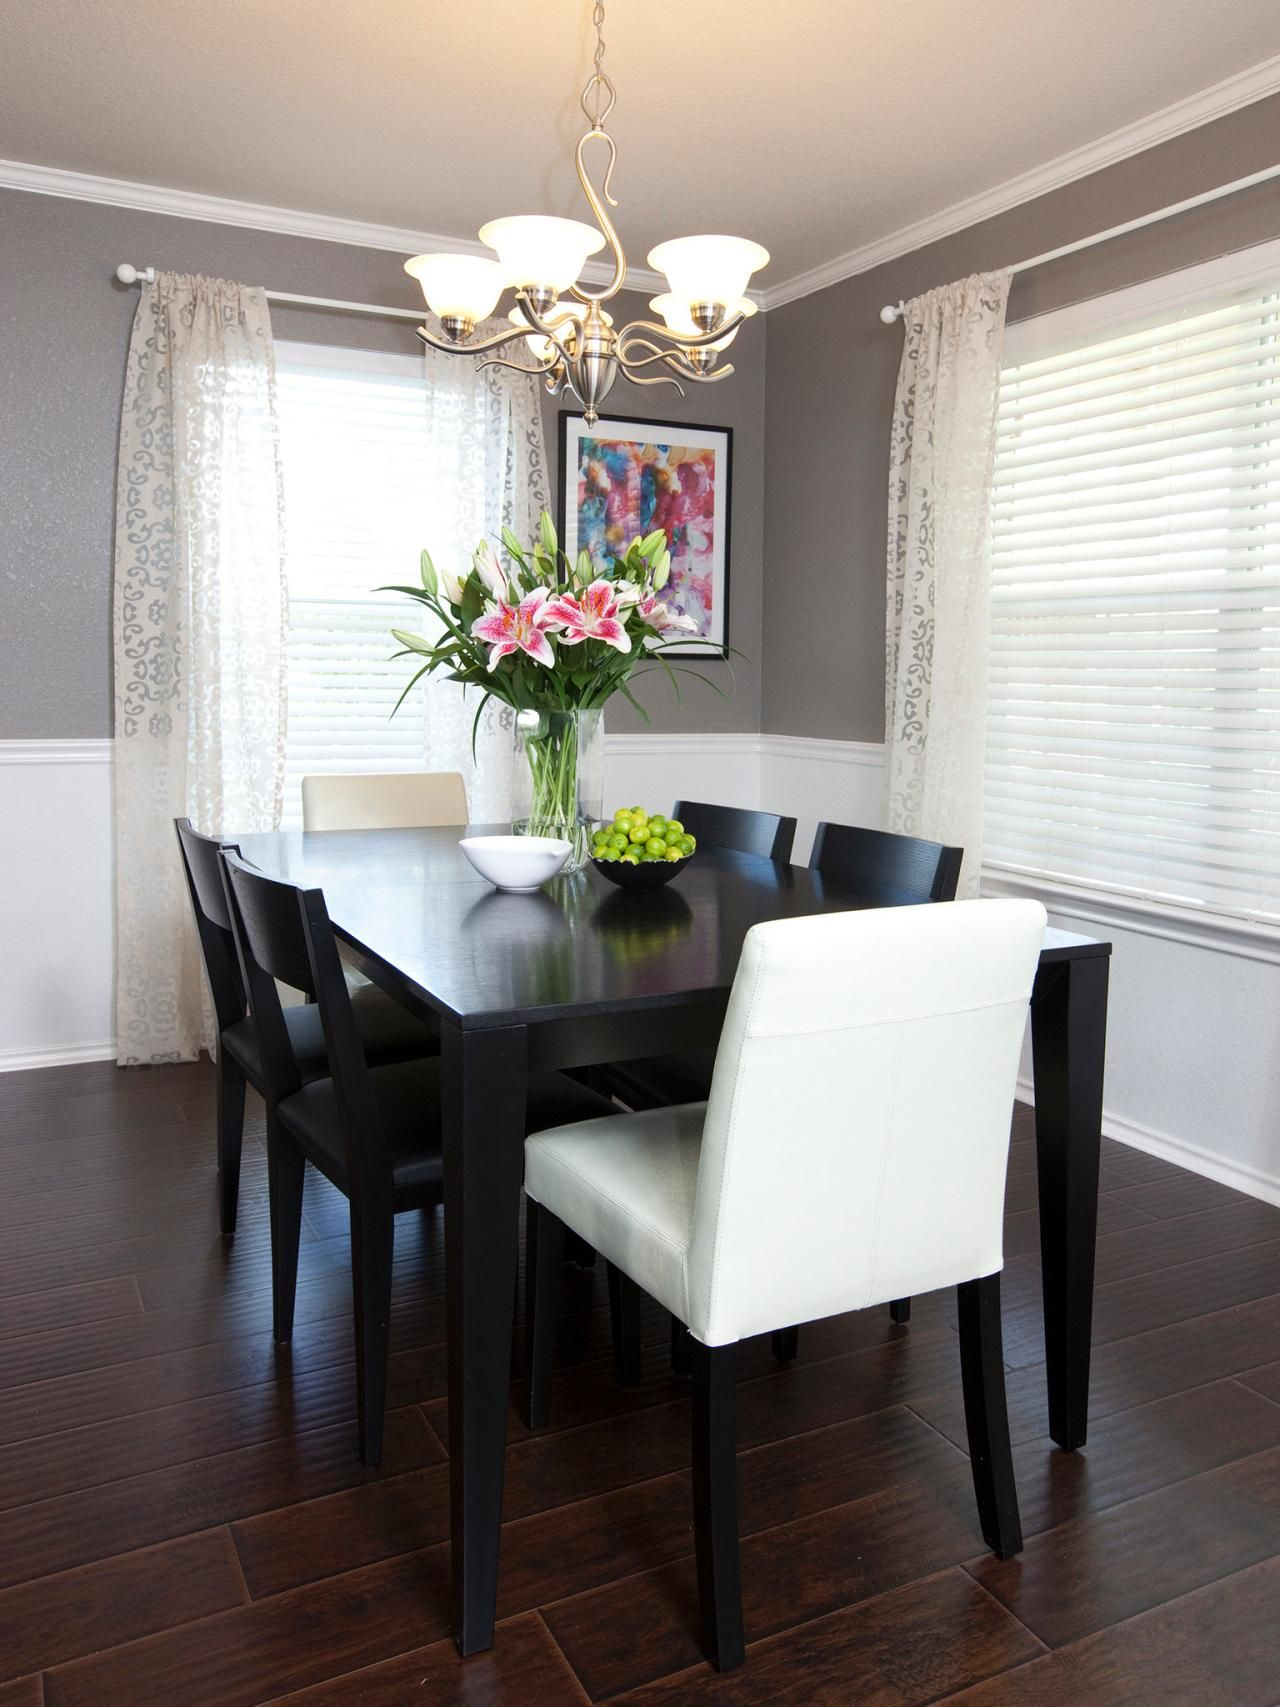 chair rail molding divides two toned walls in this neutral dining room sheer curtains - Colorful Dining Room Tables